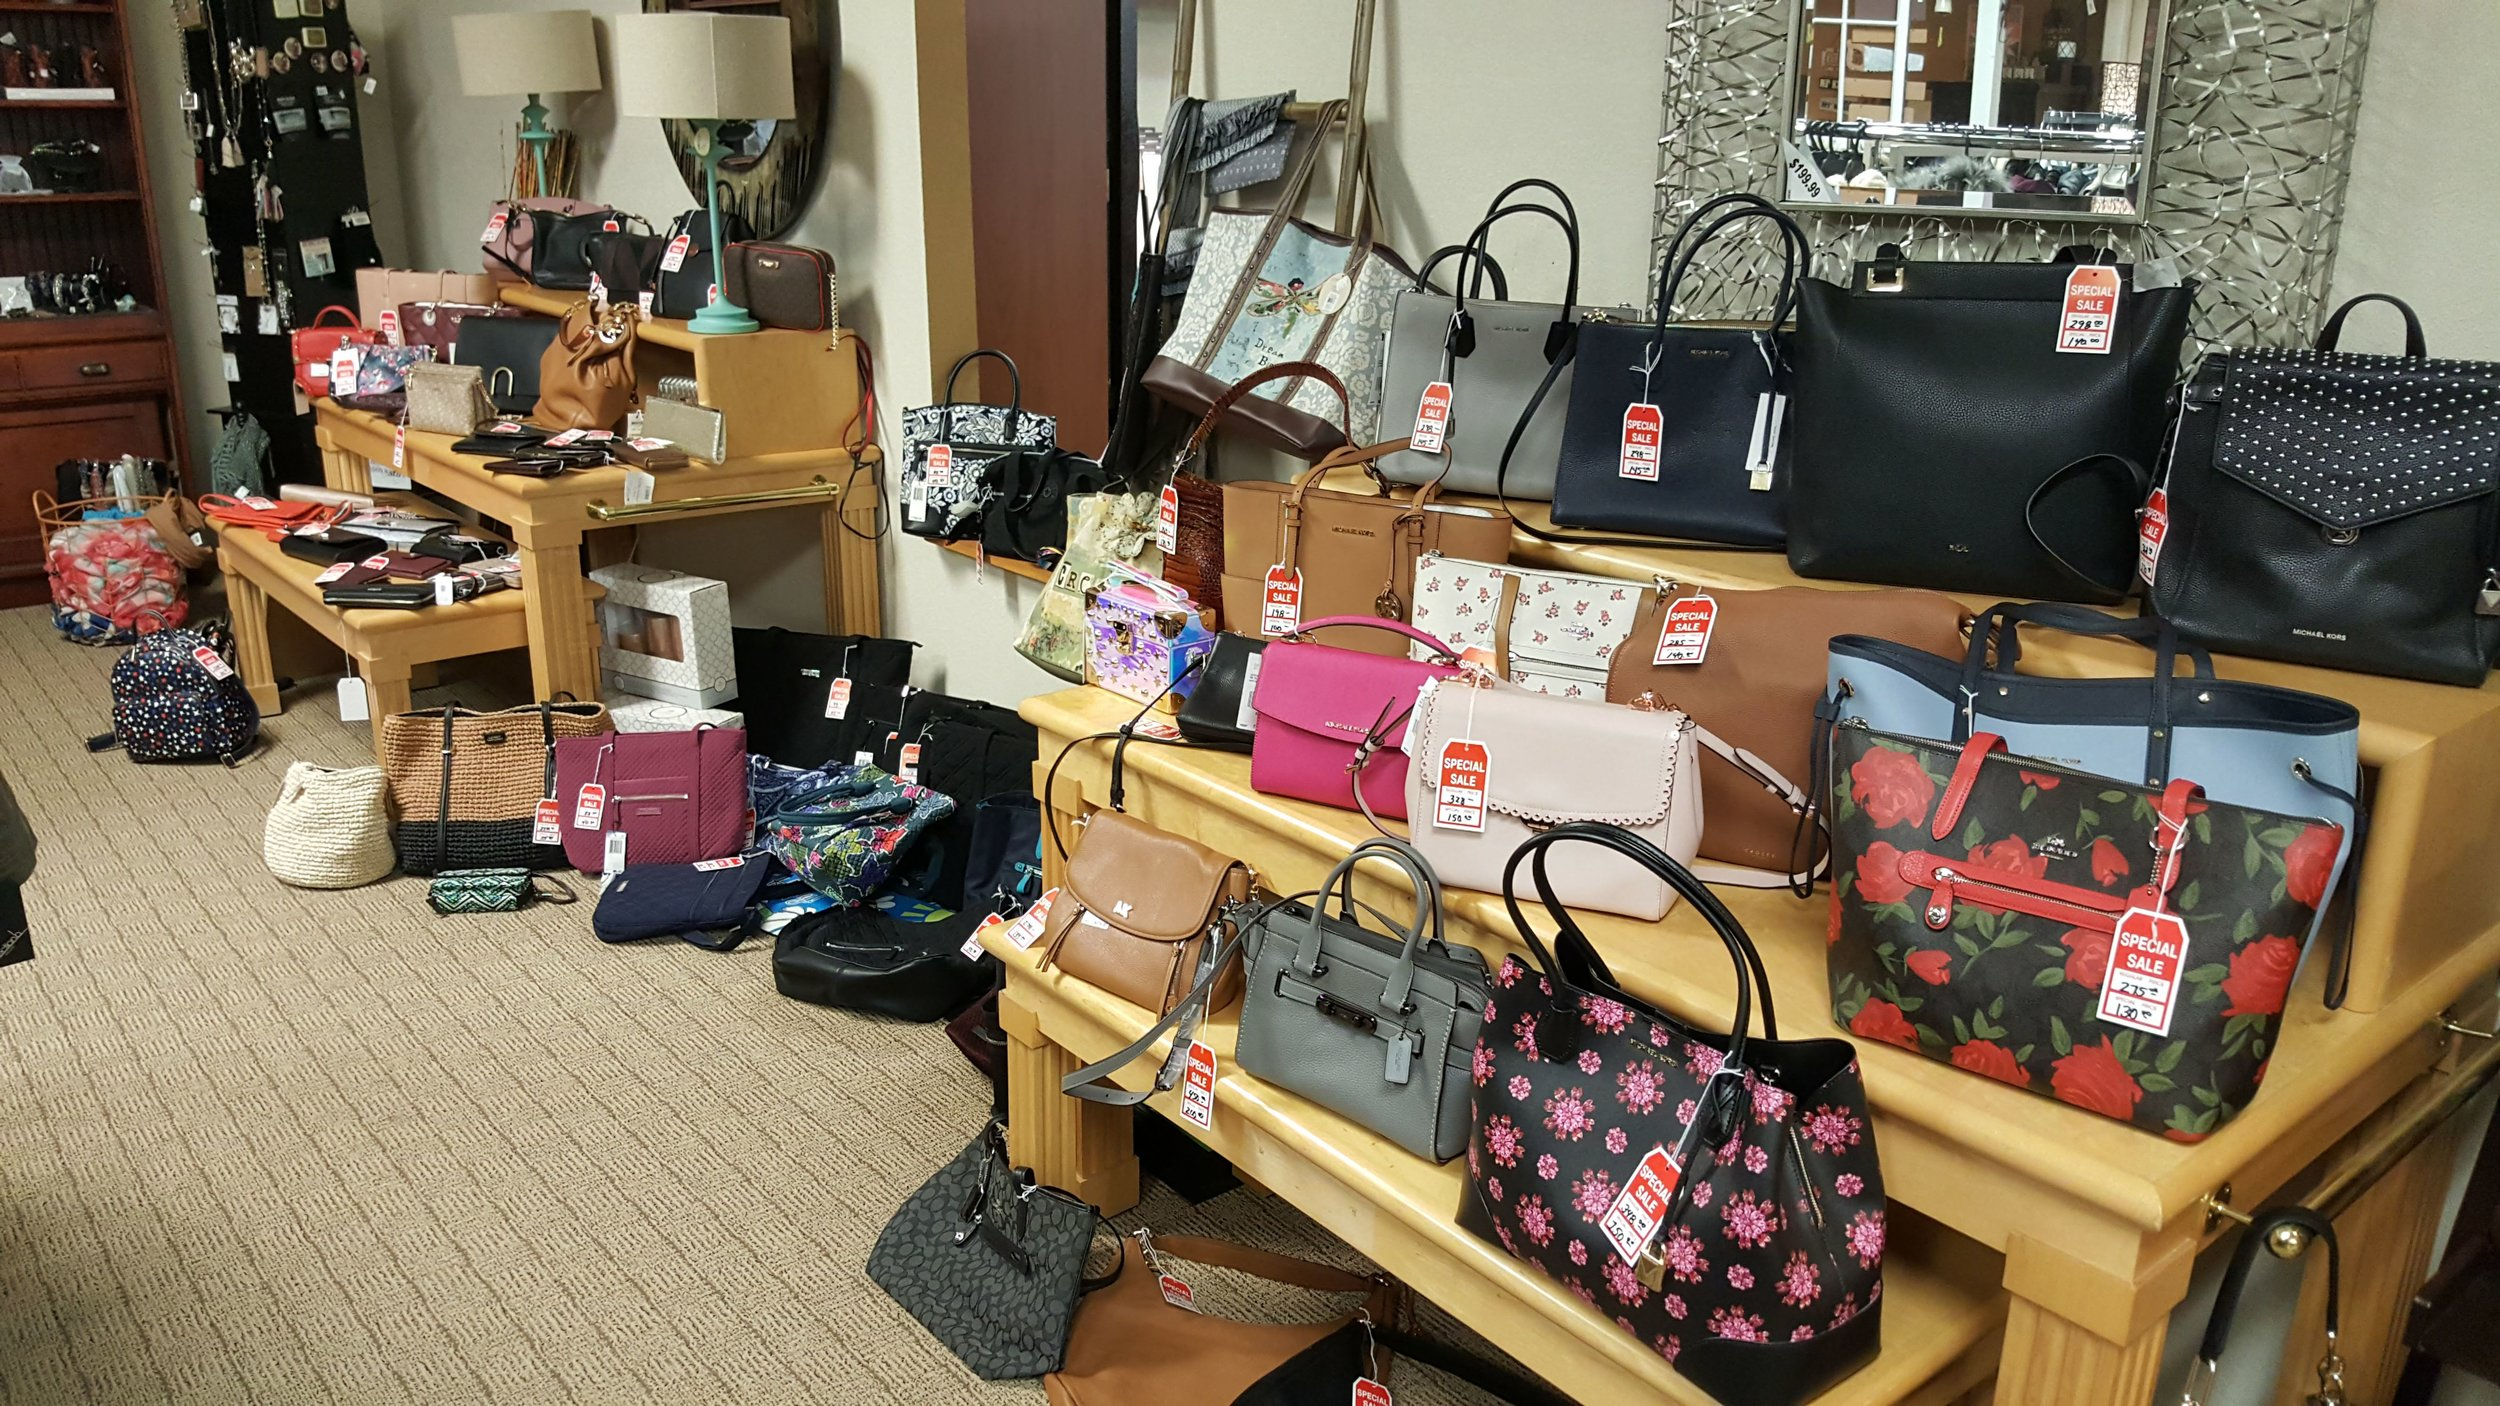 Purses from Macy's at great discounts. Mostly Michael Kors. All half off or more!